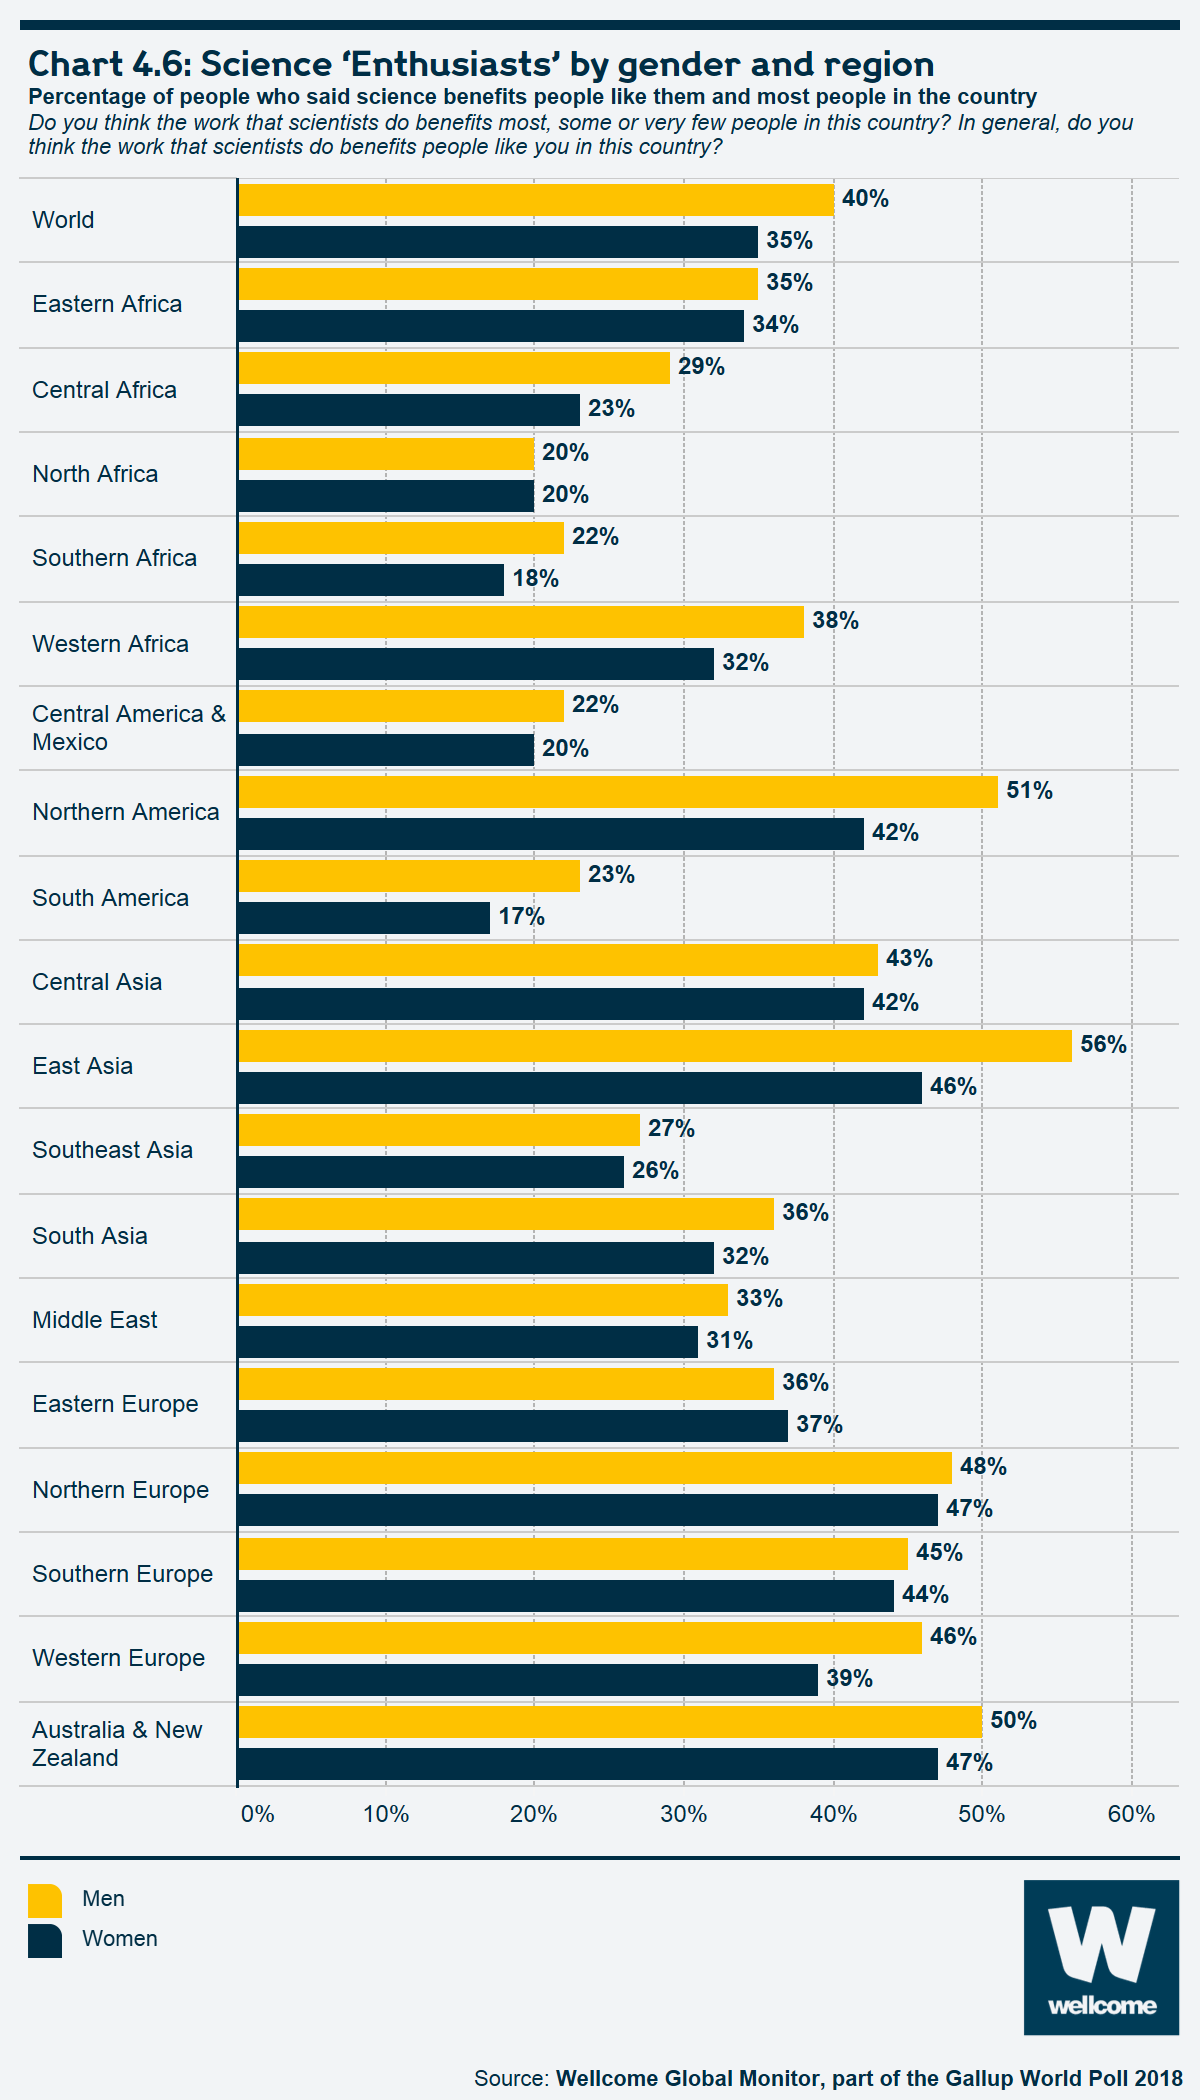 Chart 4.6 Science 'Enthusiasts' by gender and region